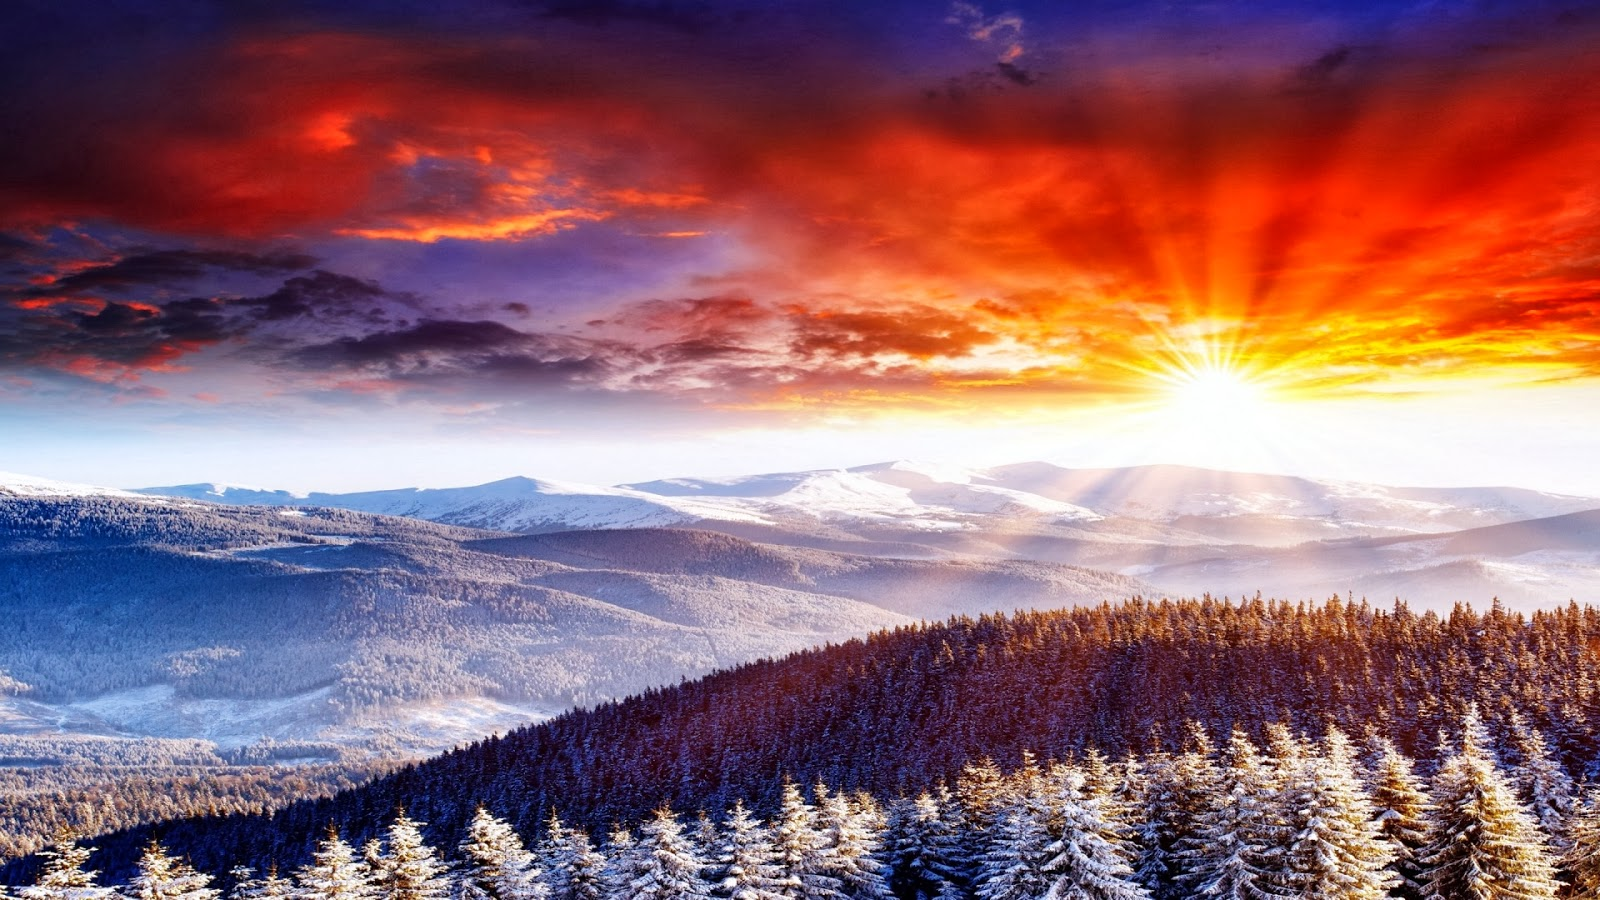 Sunrise Wallpapers | Most beautiful places in the world ...